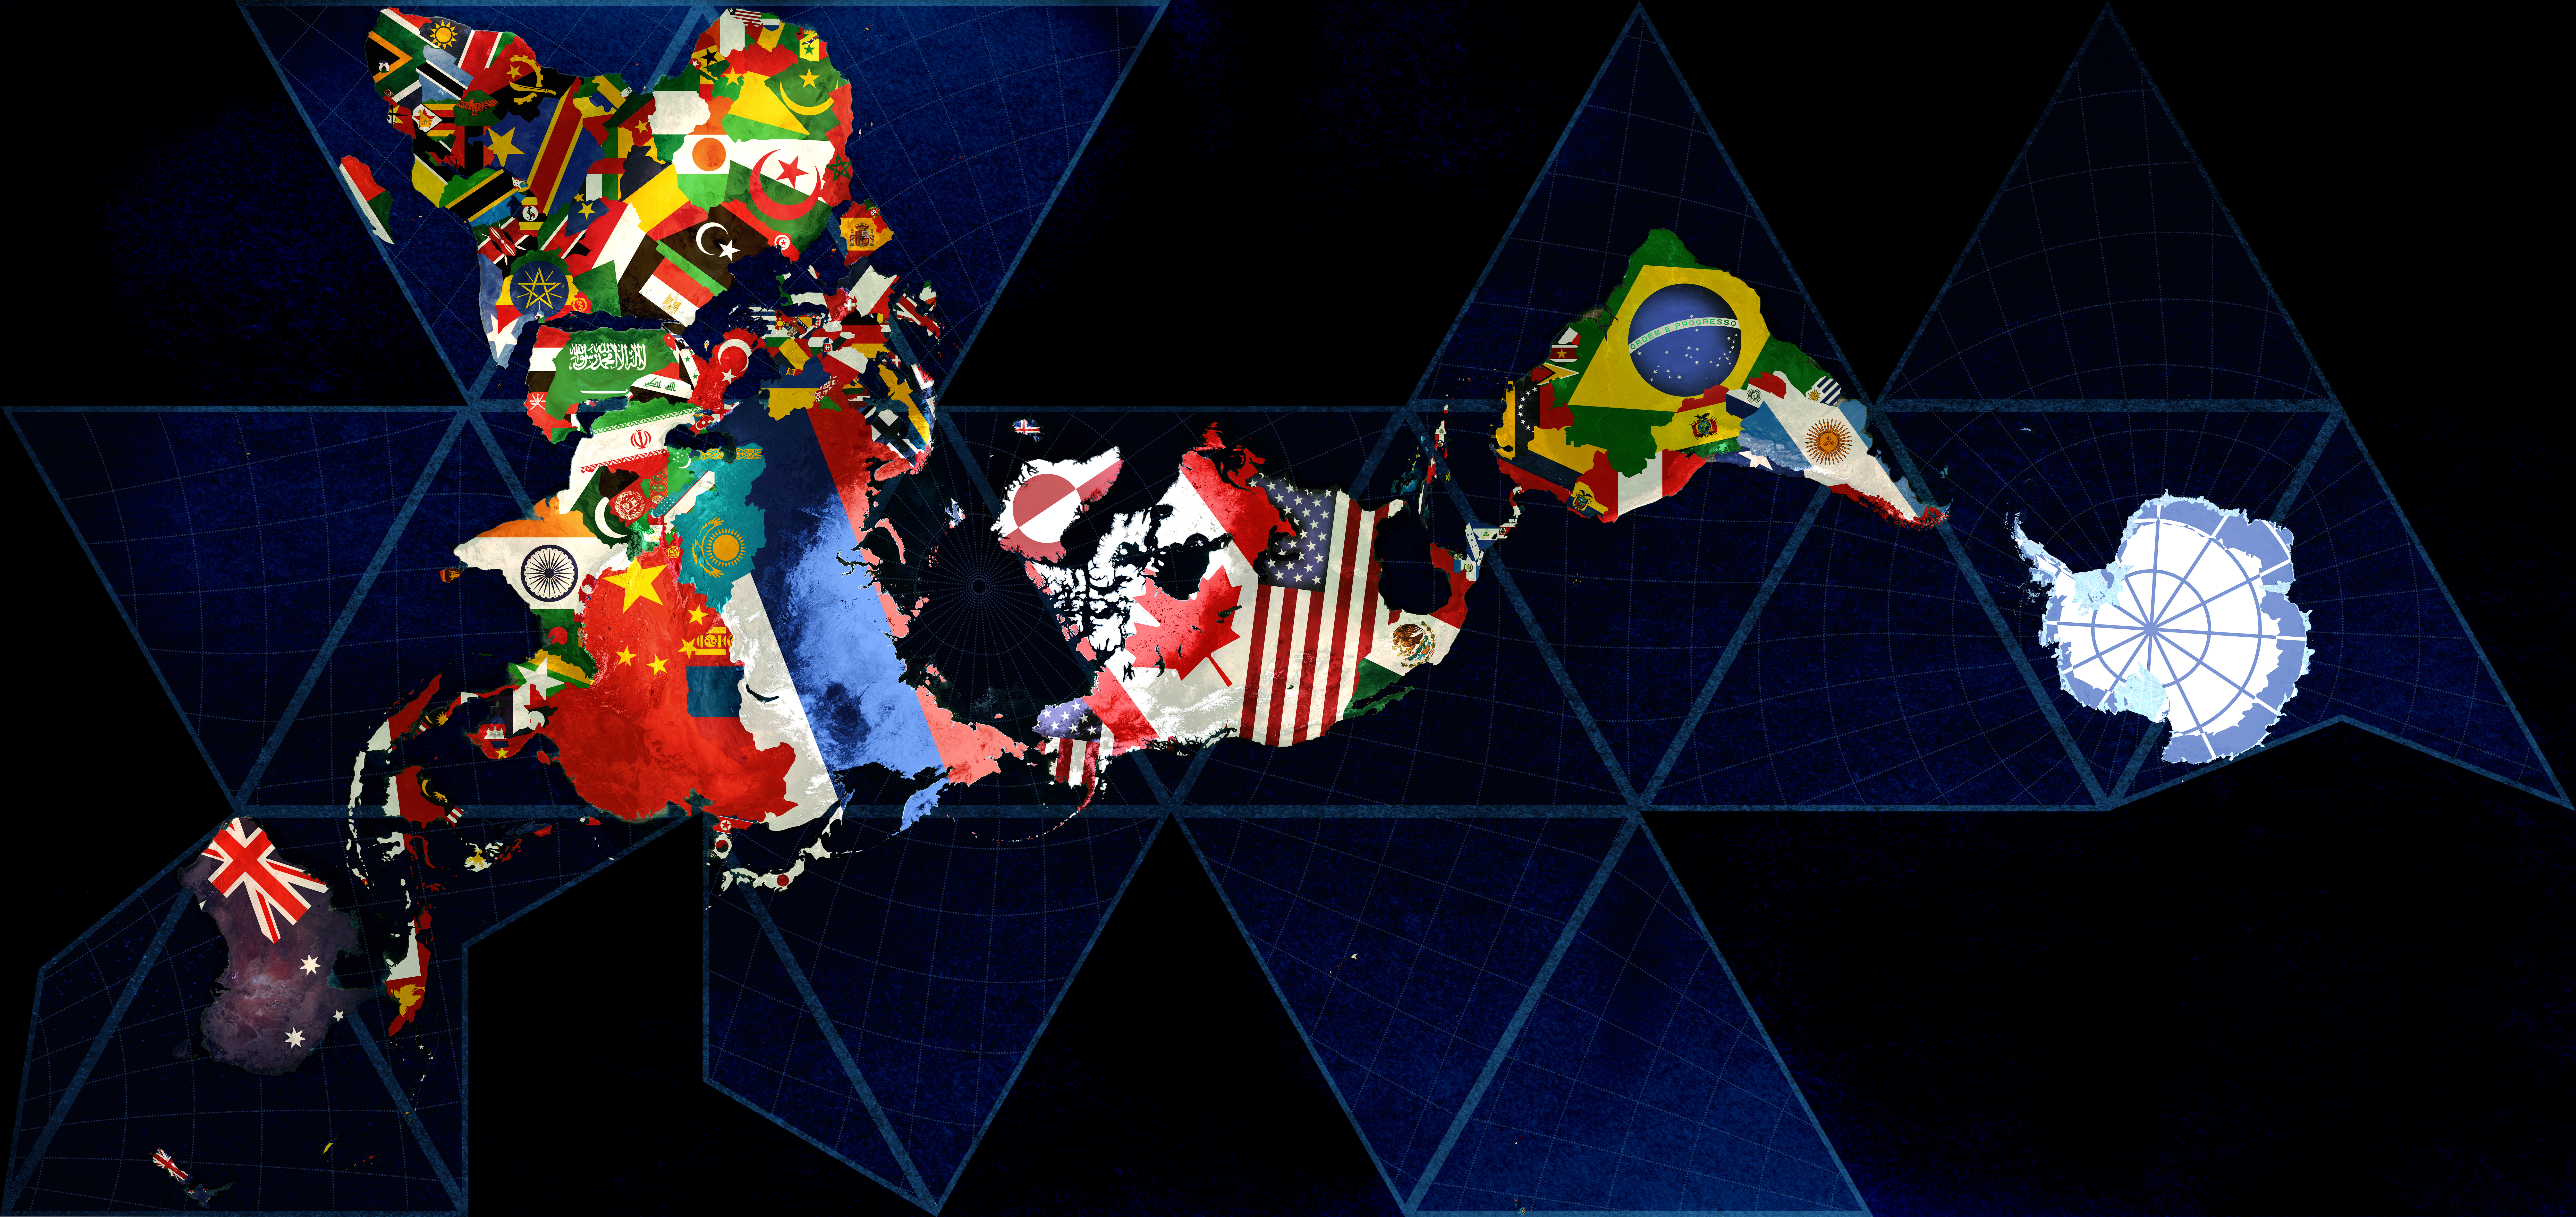 Dymaxion map projection with world flags vexillology currentdymaxion map projection with world flags gumiabroncs Images